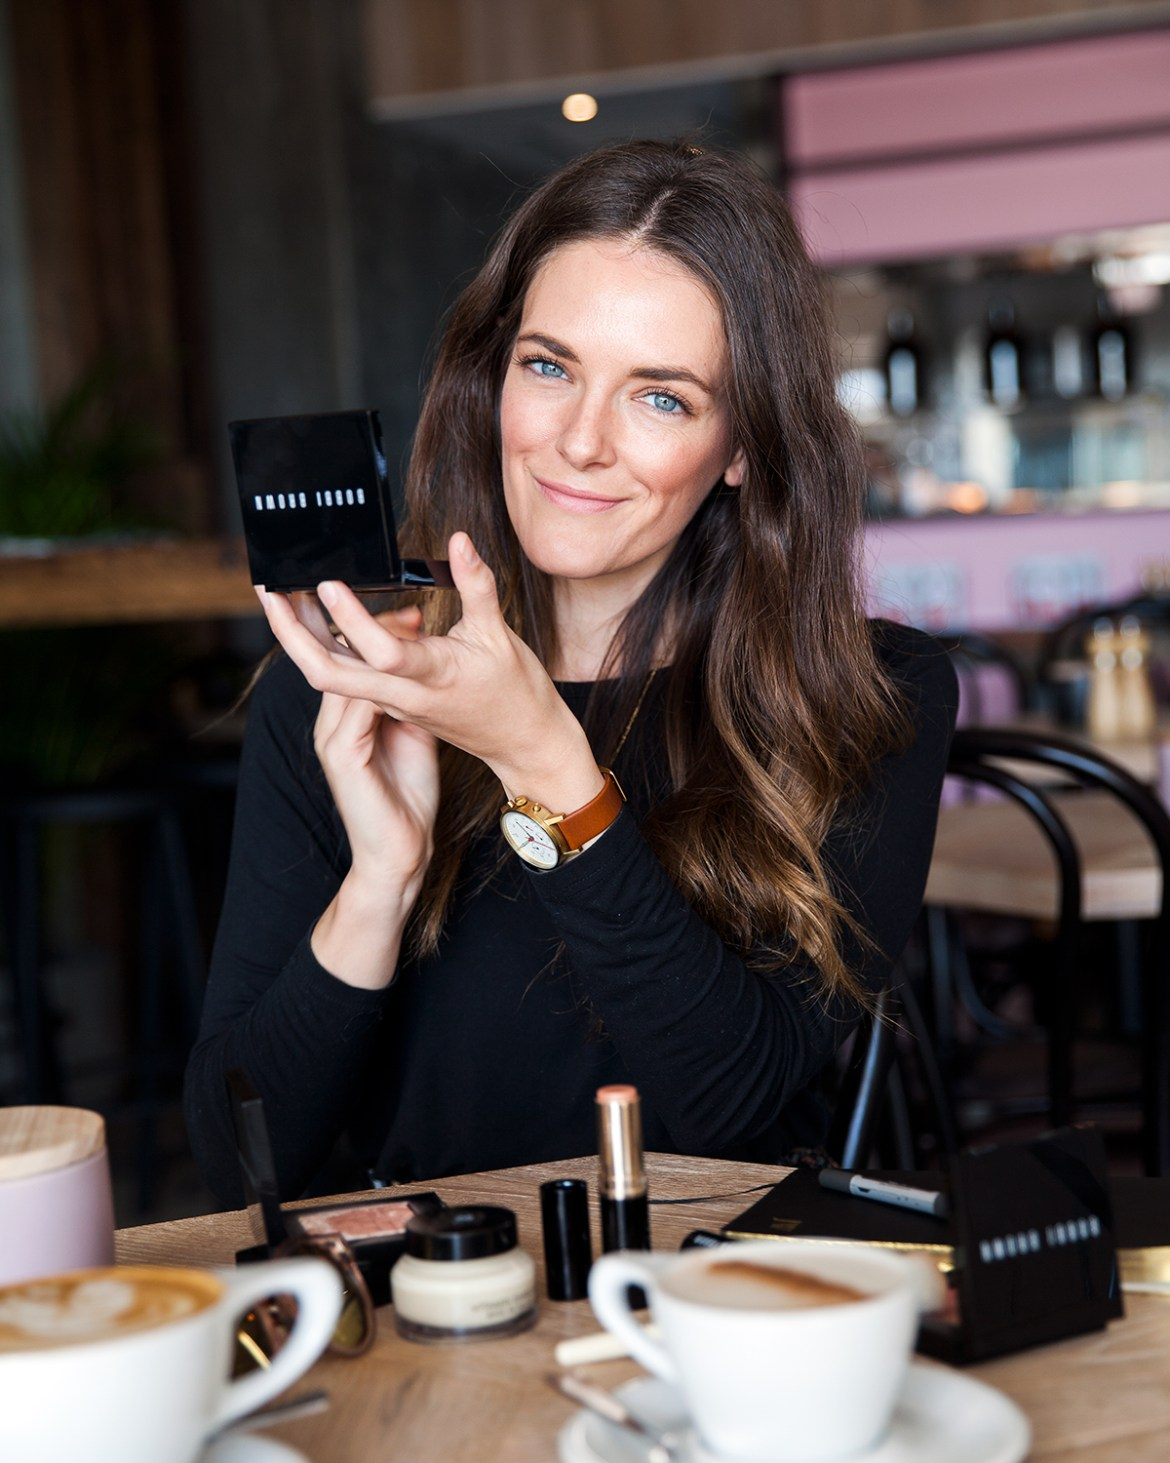 Winter beauty edit by Australian beauty blogger Inspiring Wit featuring Bobbi Brown